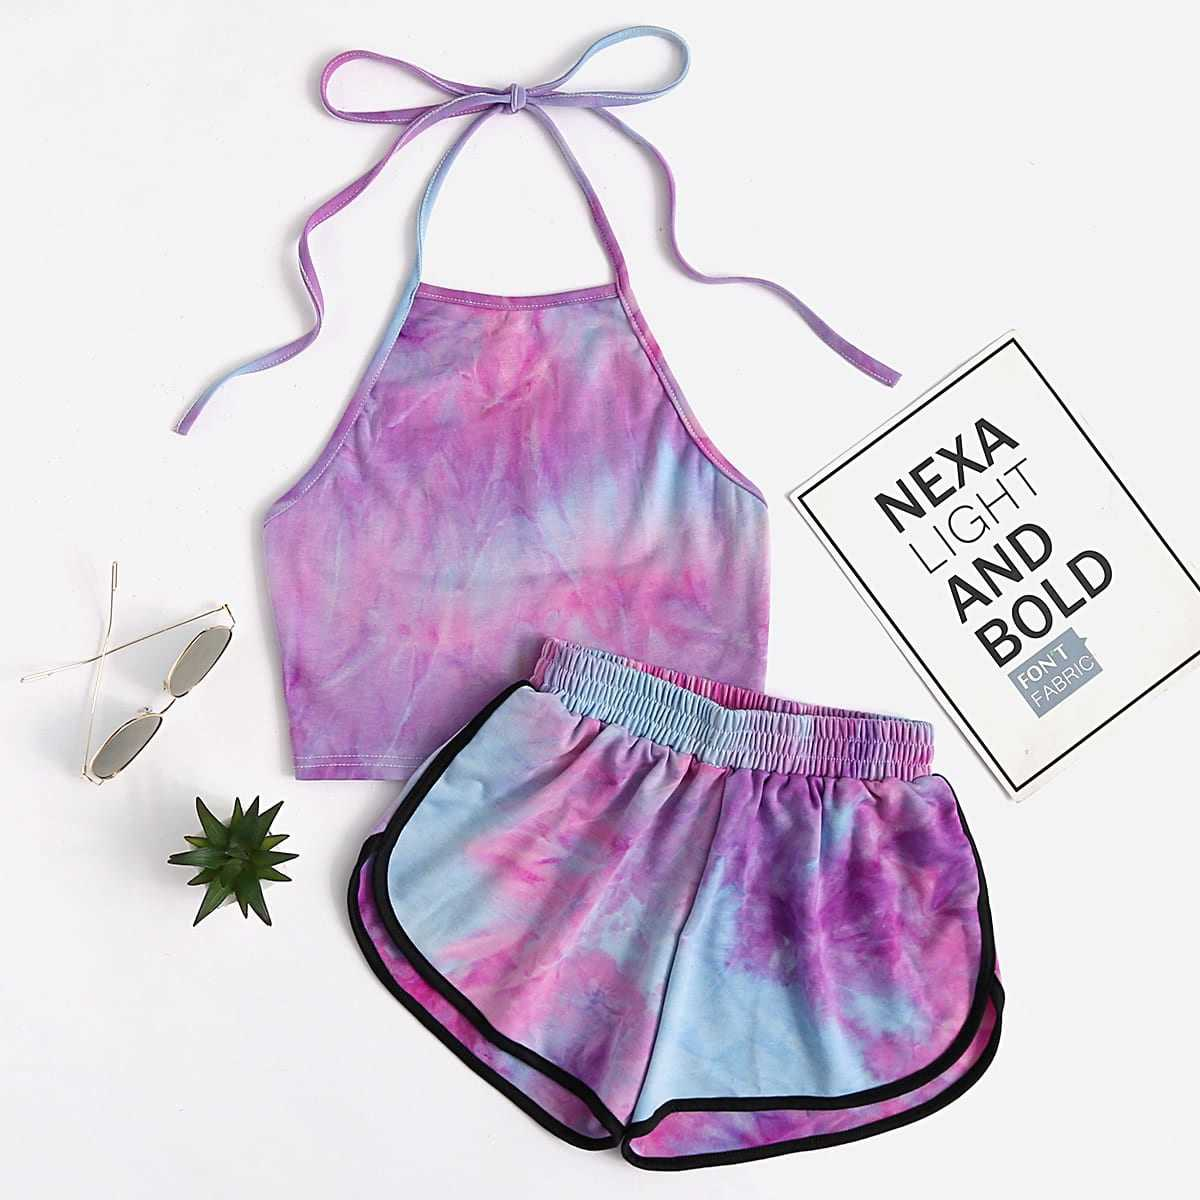 Halter Neck Water Color Crop Top With Ringer Shorts in Purple by ROMWE on GOOFASH